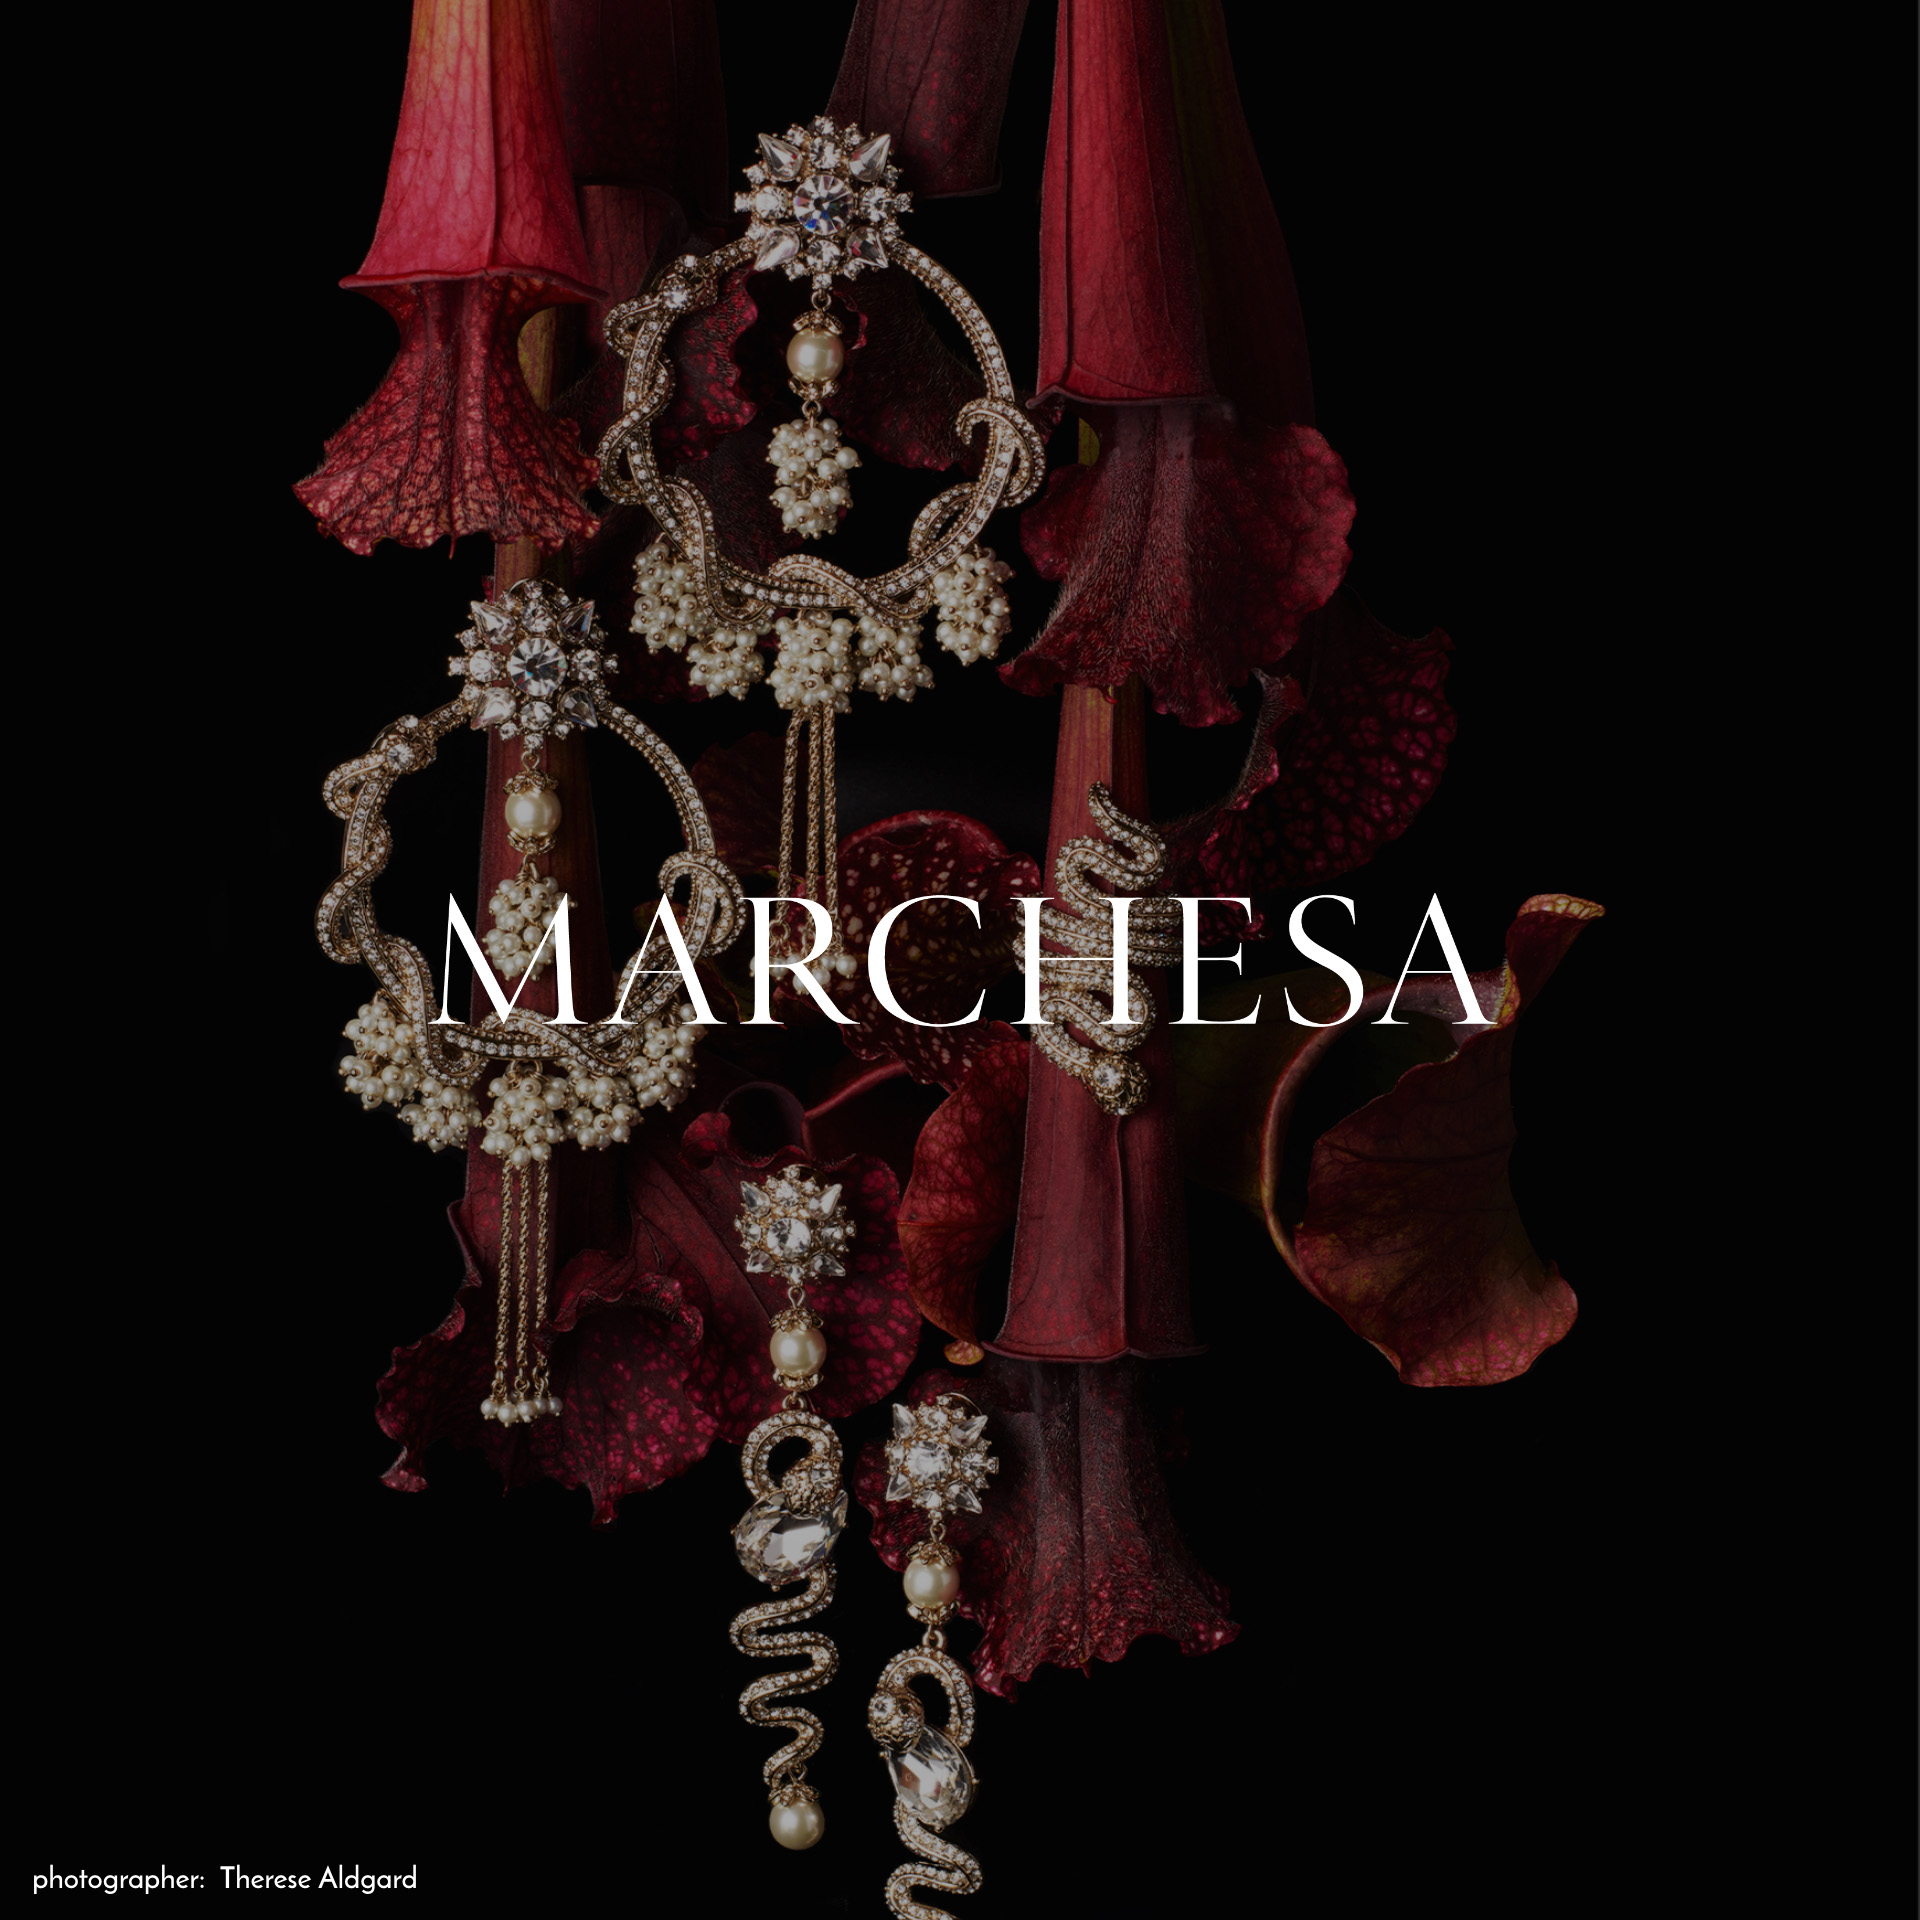 Brand logo of Marchesa